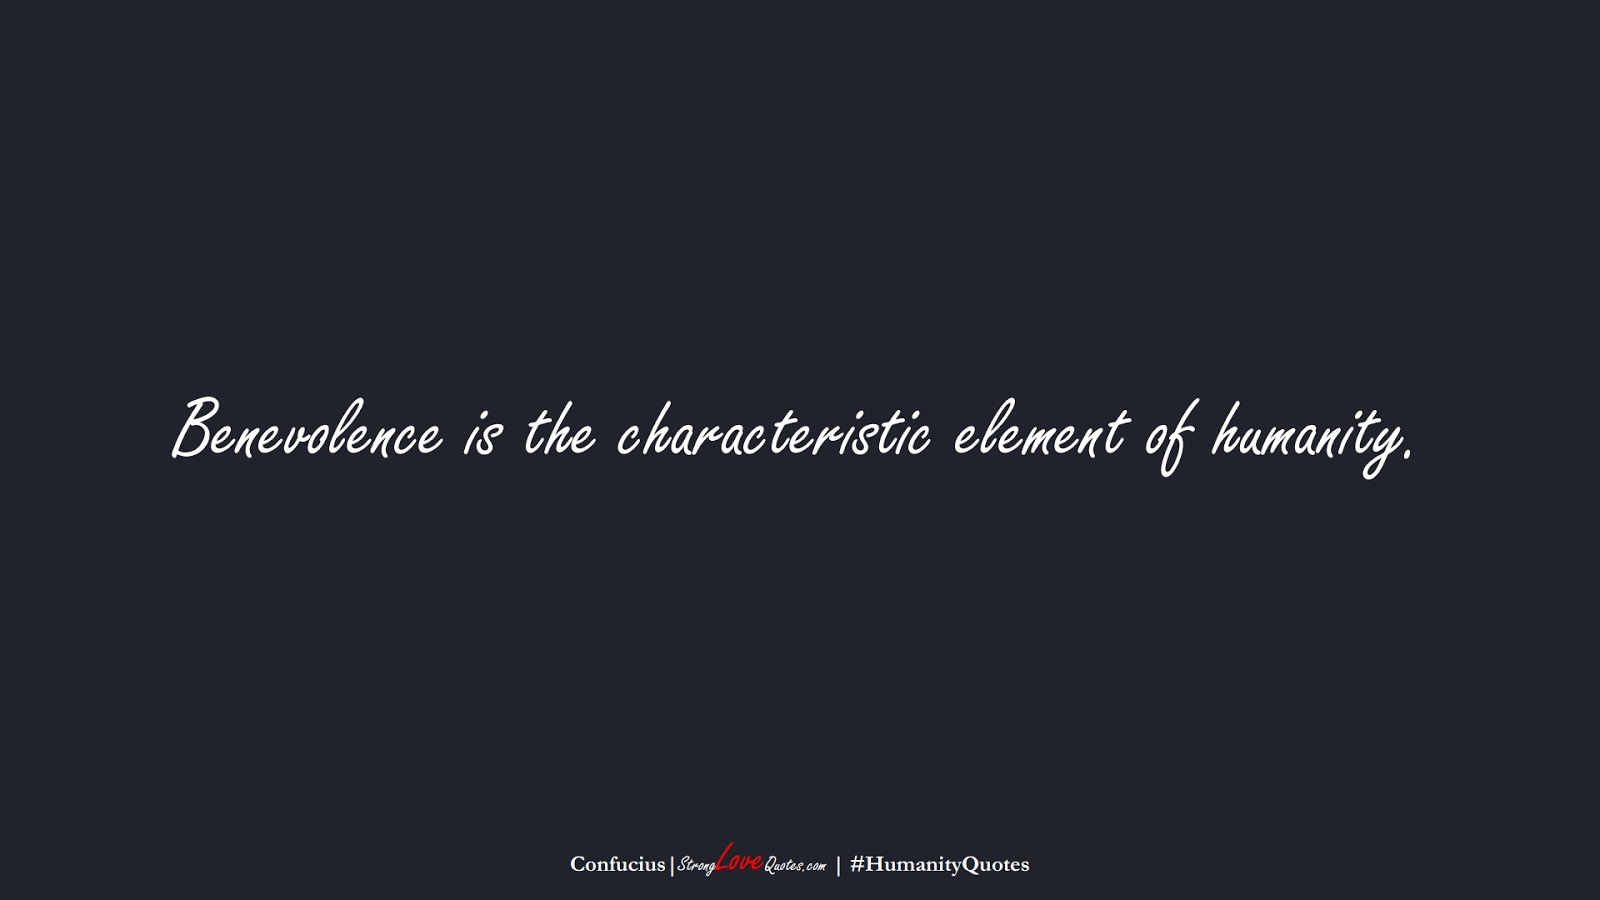 Benevolence is the characteristic element of humanity. (Confucius);  #HumanityQuotes